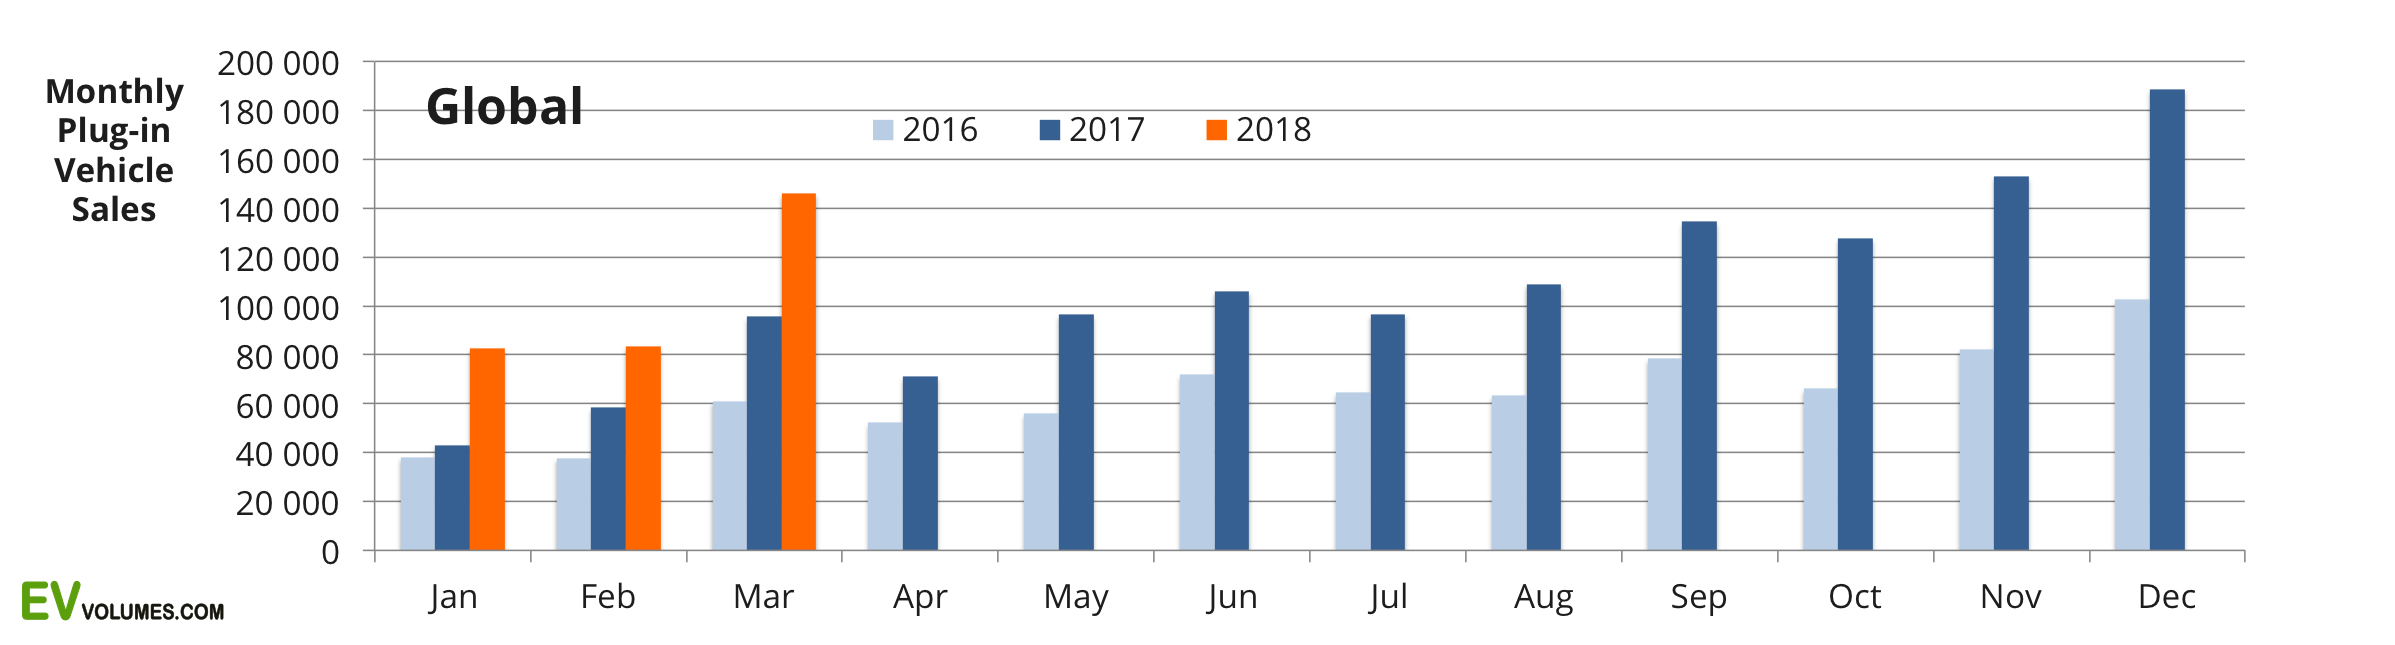 first Global Plug-in Sales for Q1-2018 image